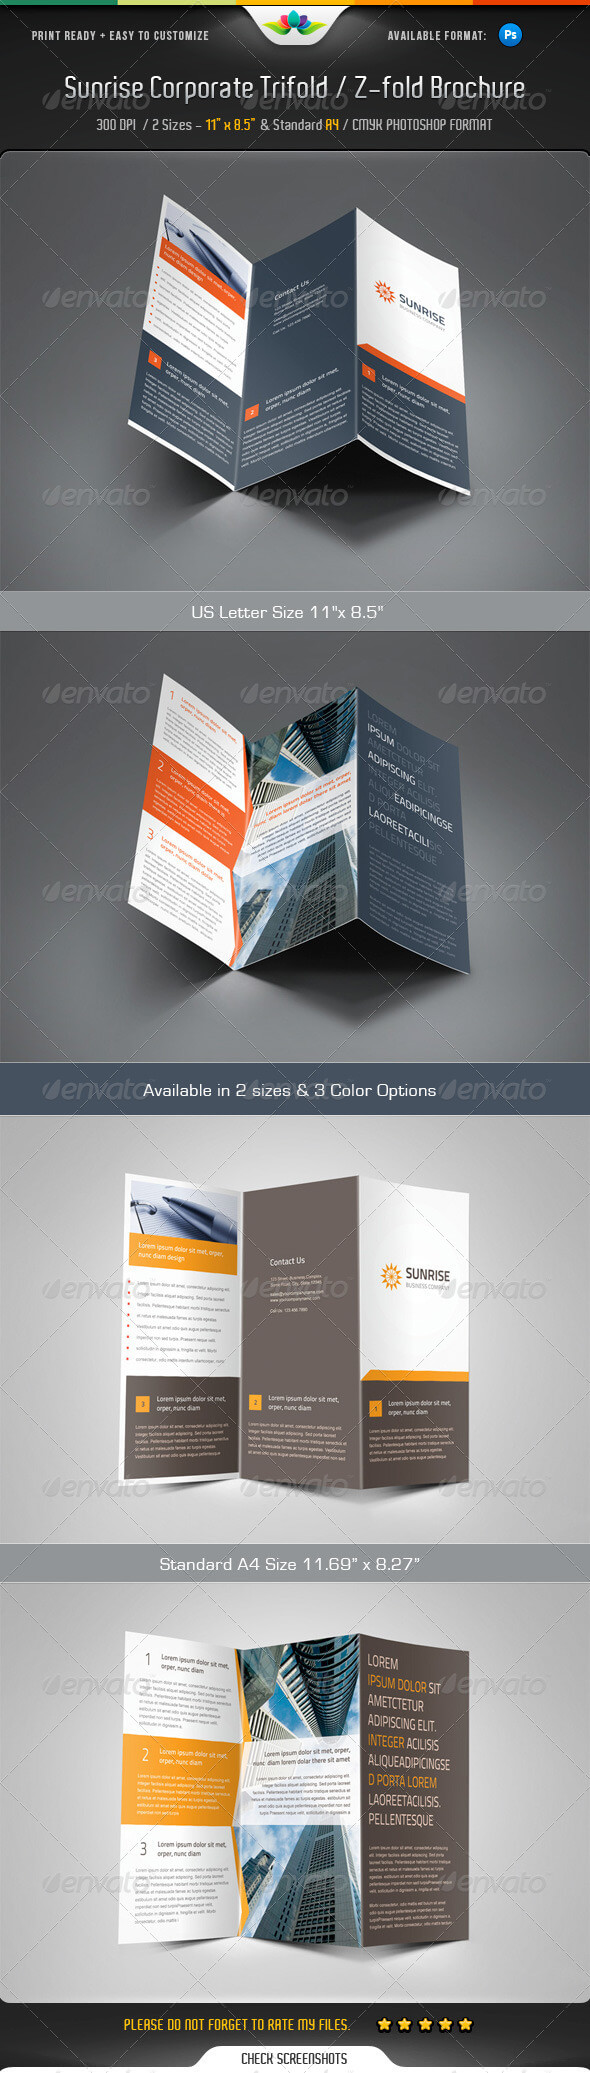 Z Fold Brochure Templates From Graphicriver Intended For Z Fold Brochure Template Indesign